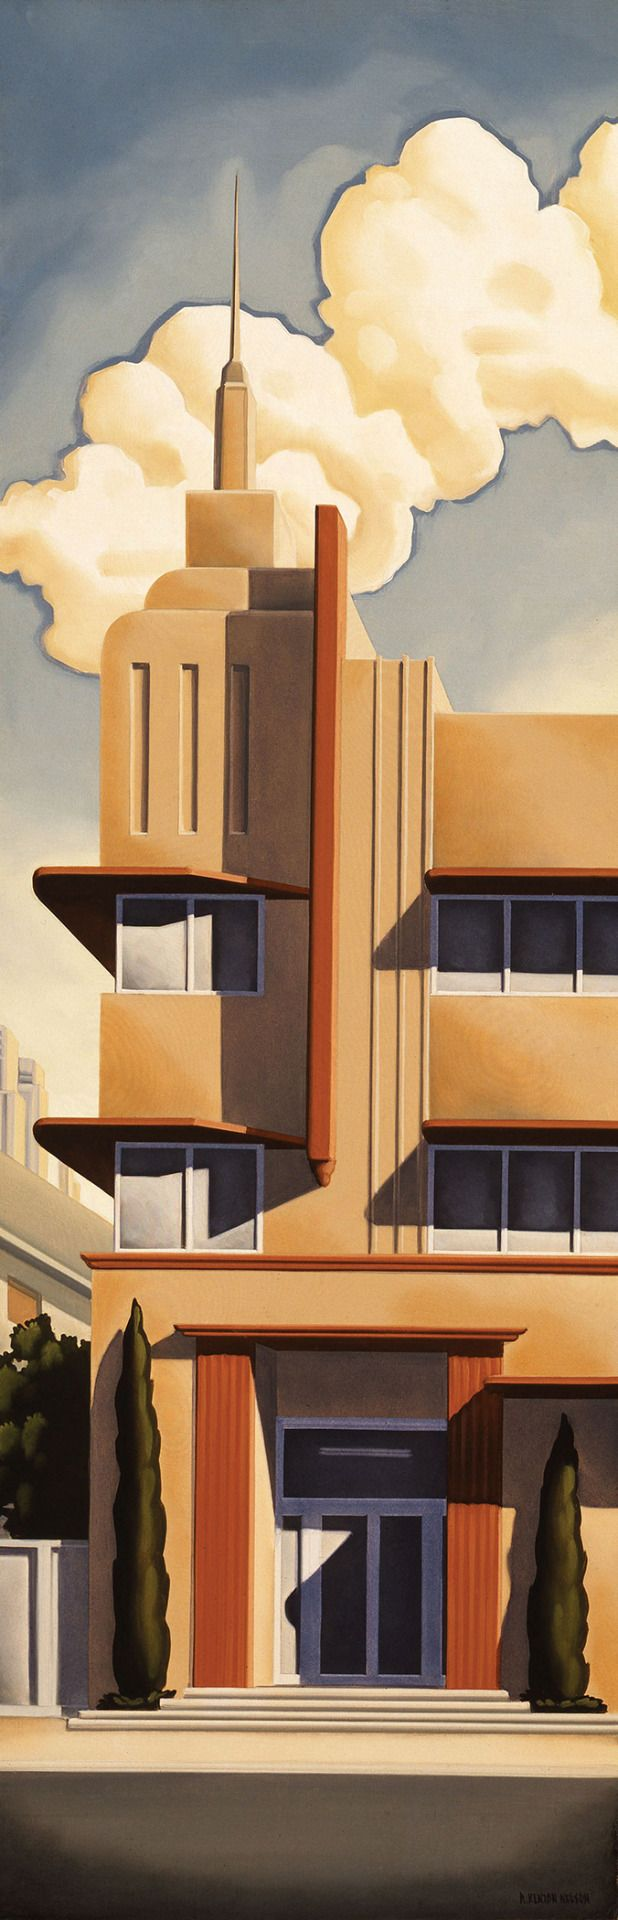 Kenton Nelson, Mr. Bird's Request, oil on panel, 36 x 12 inches, 1996